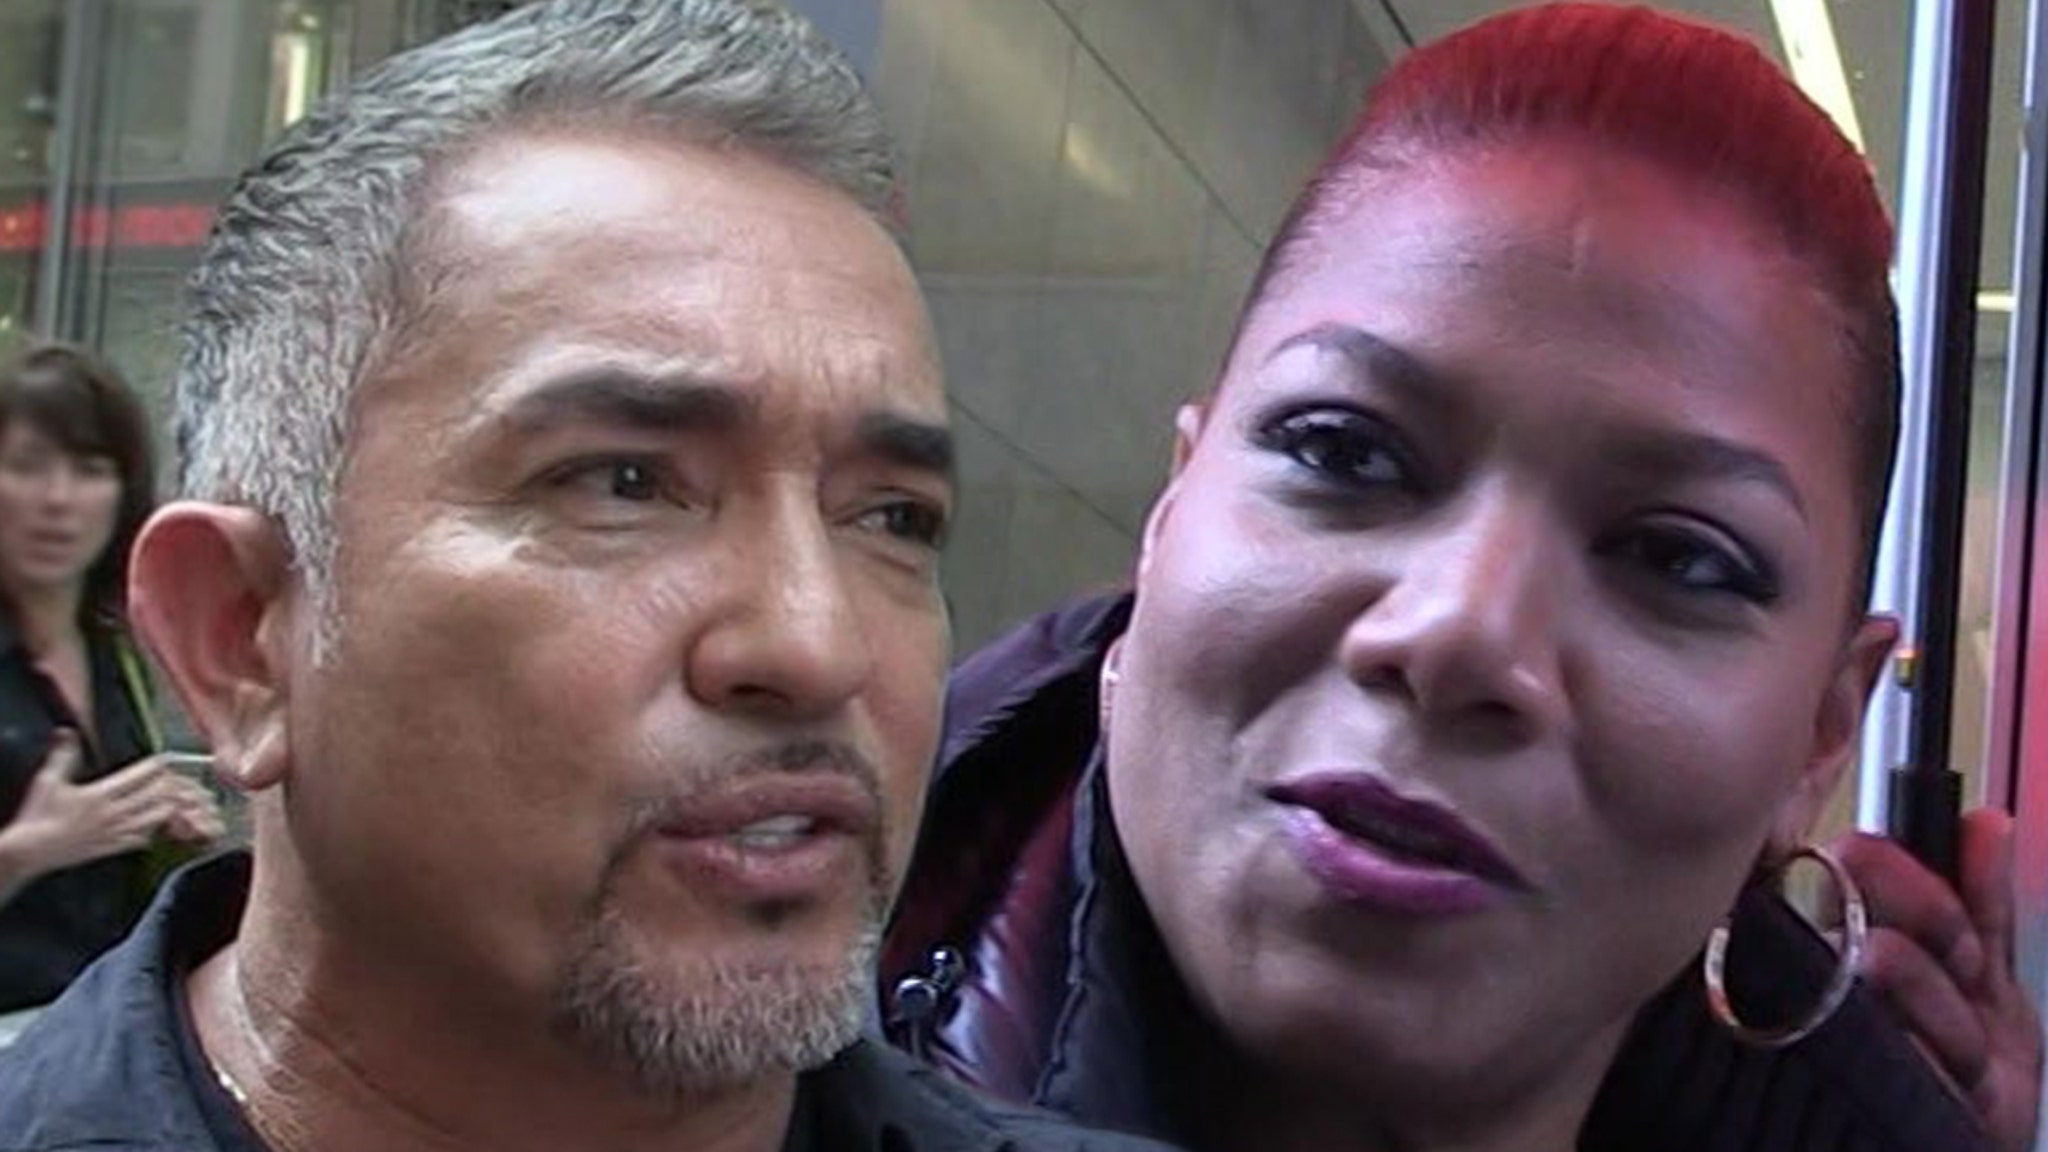 Cesar Millan's Pit Bull Allegedly Killed Queen Latifah's Dog, Then Covered It Up